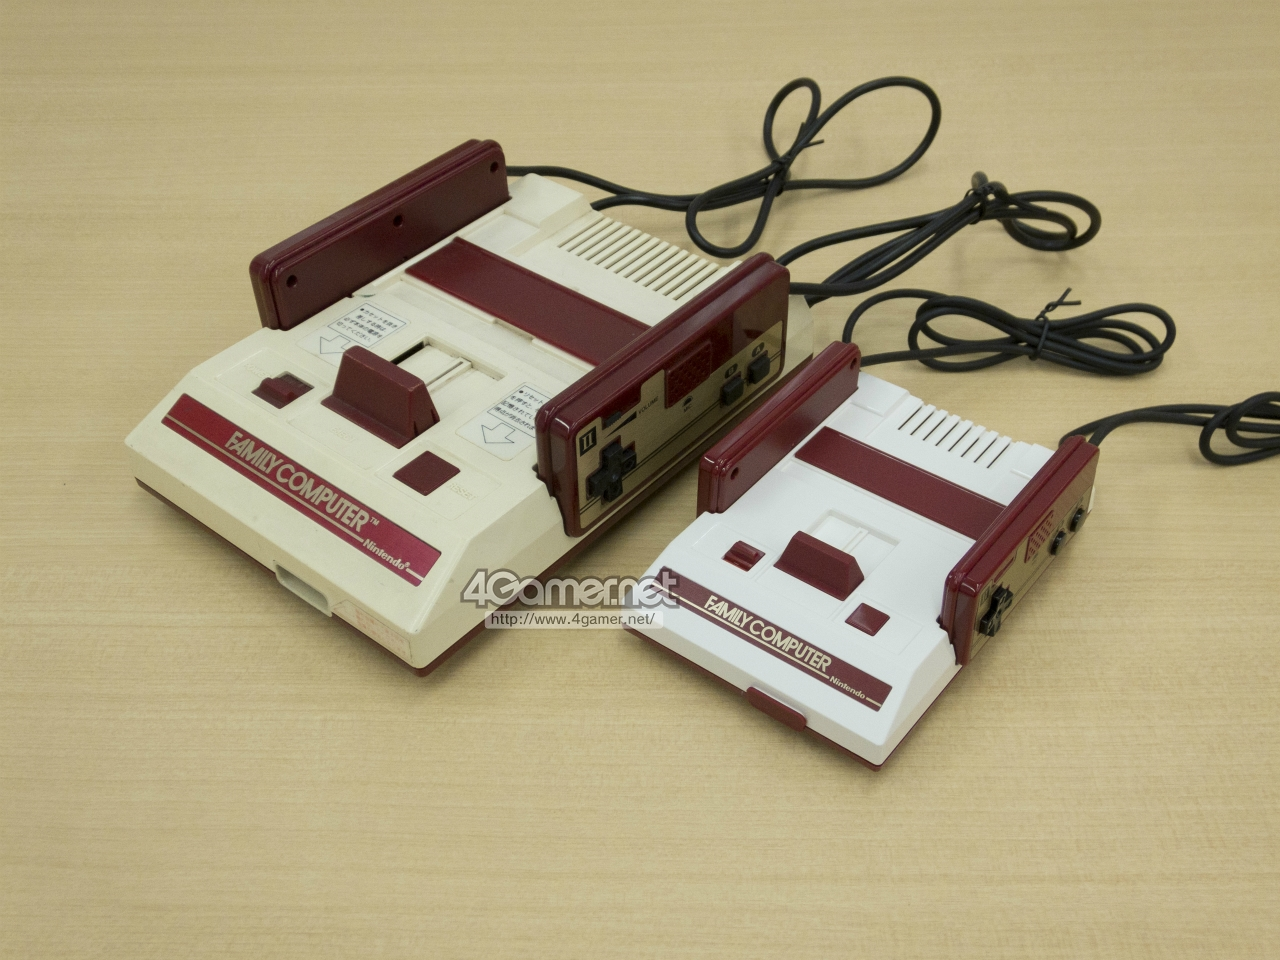 Famicom Mini Nes More Pictures Of The Manual Nintendo Wiring Schematic If Youre Interested But Also And Its Games Is Already Available Online Click Here To Check Them Out